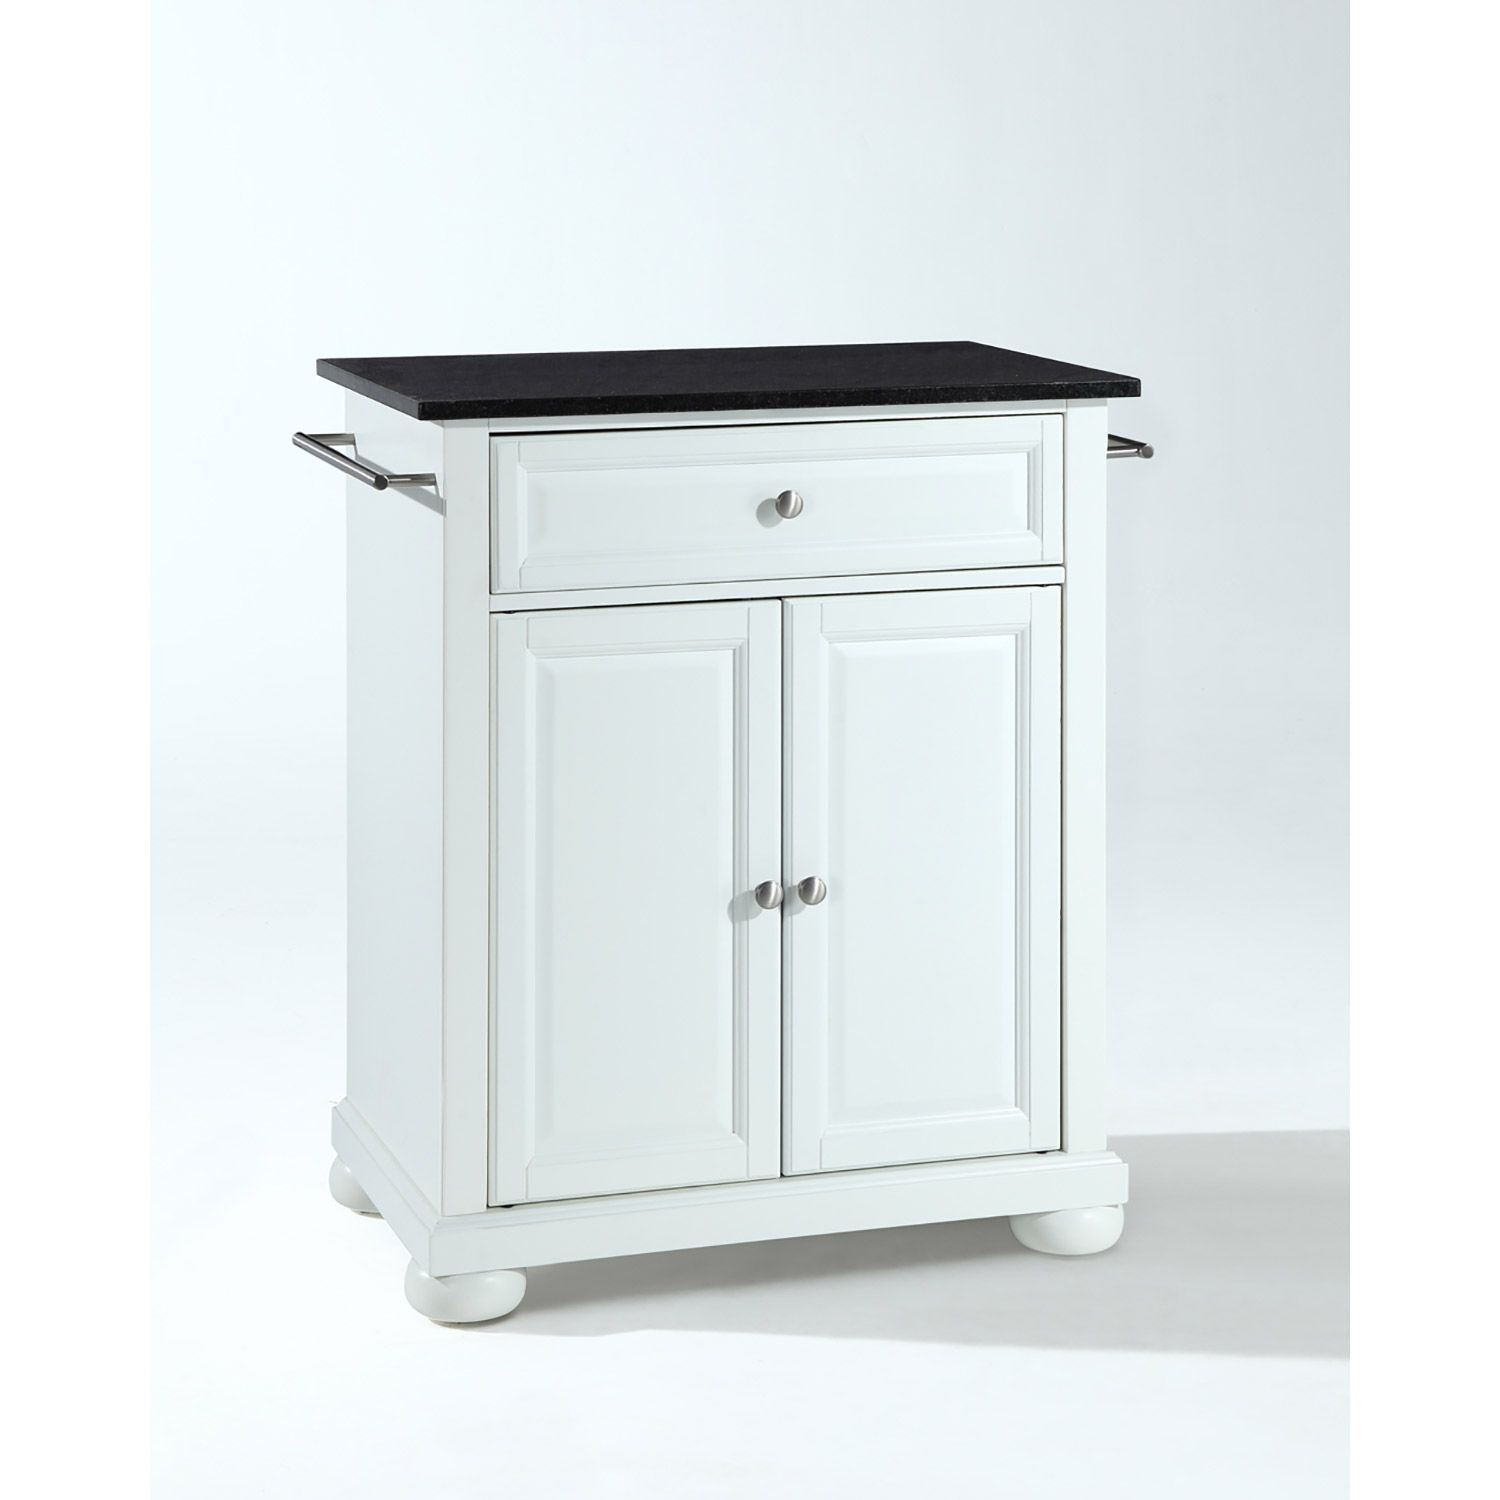 Picture of Alexandria Black Granite Top Kitchen Cart, White *